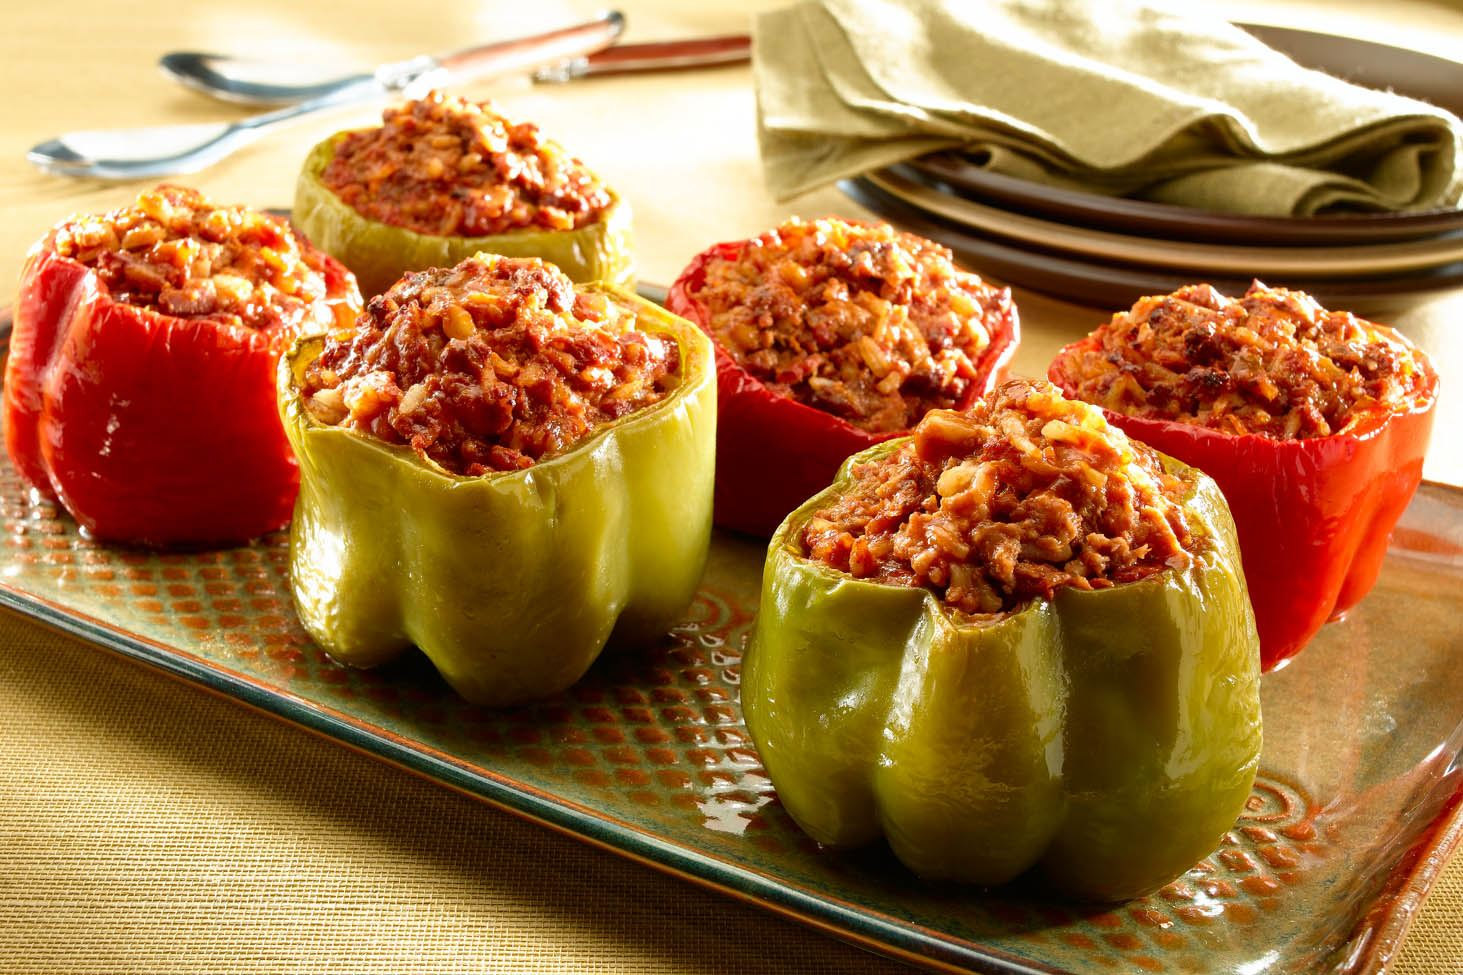 Spanish-Style Stuffed Peppers